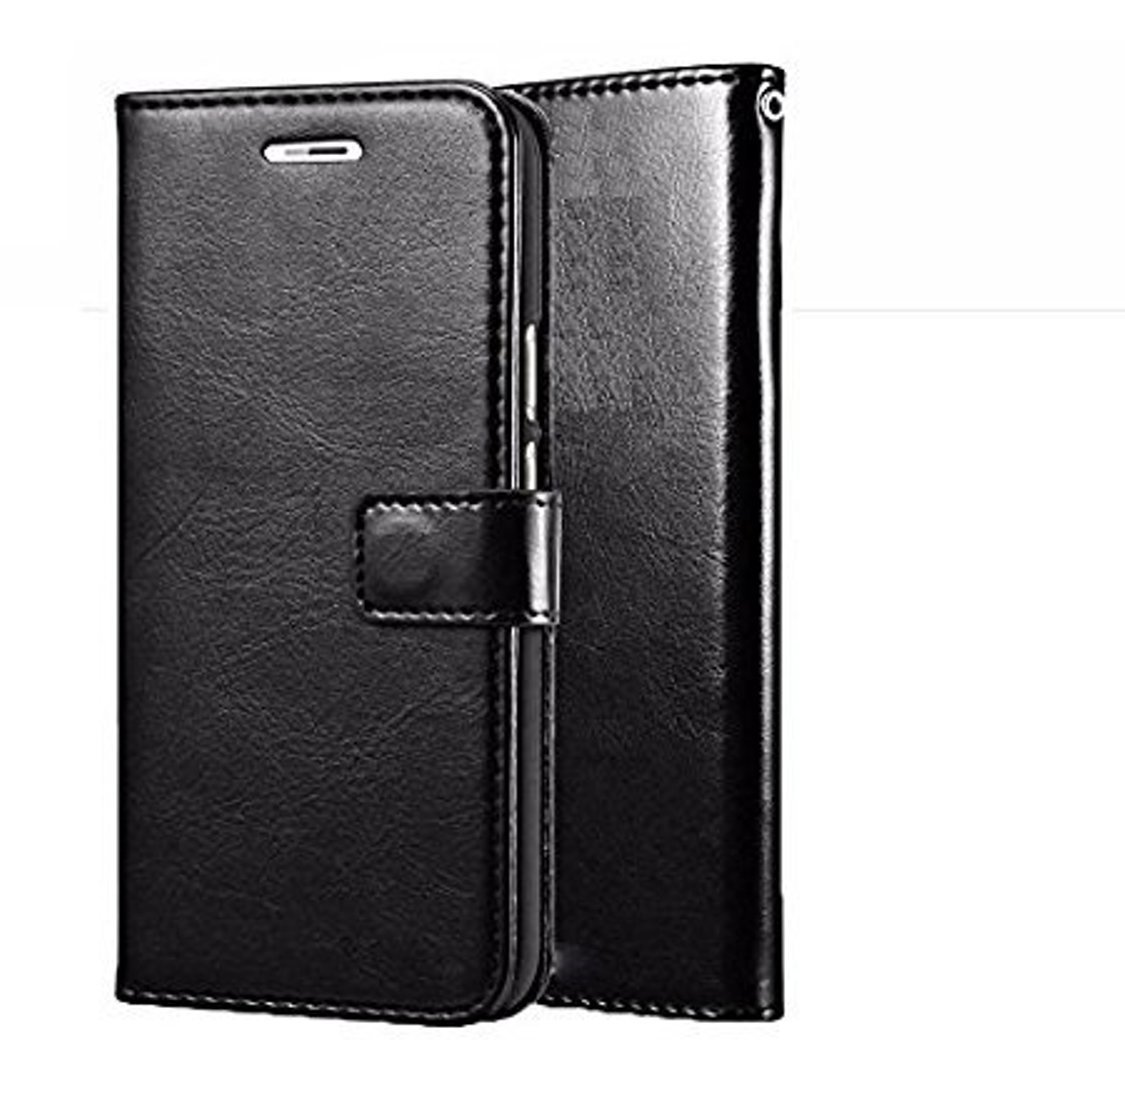 D G Kases Vintage Pu Leather Kickstand Wallet Flip Case Cover For Sony Xperia C3   Black